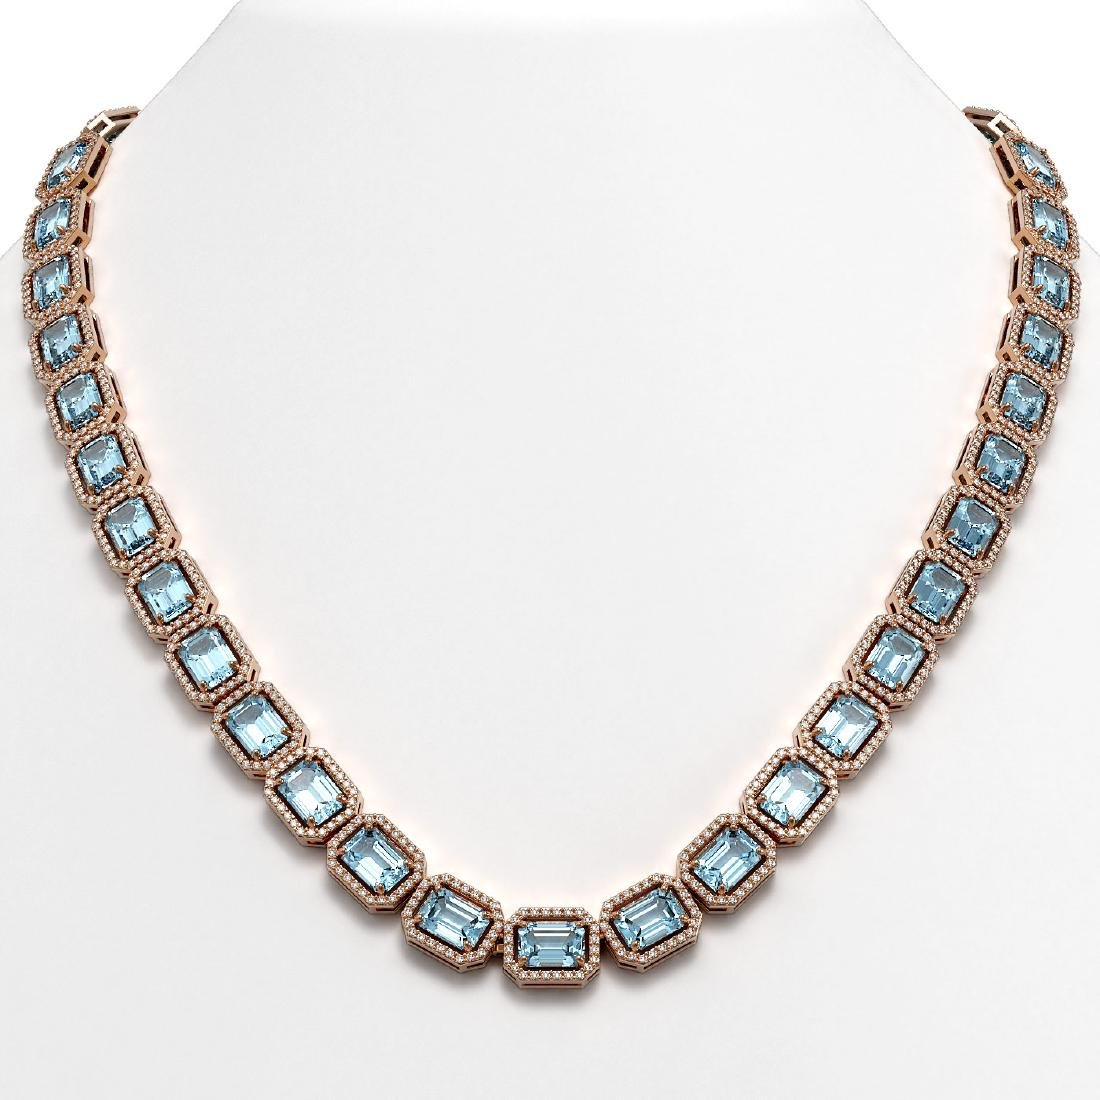 54.79 CTW Aquamarine & Diamond Halo Necklace 10K Rose